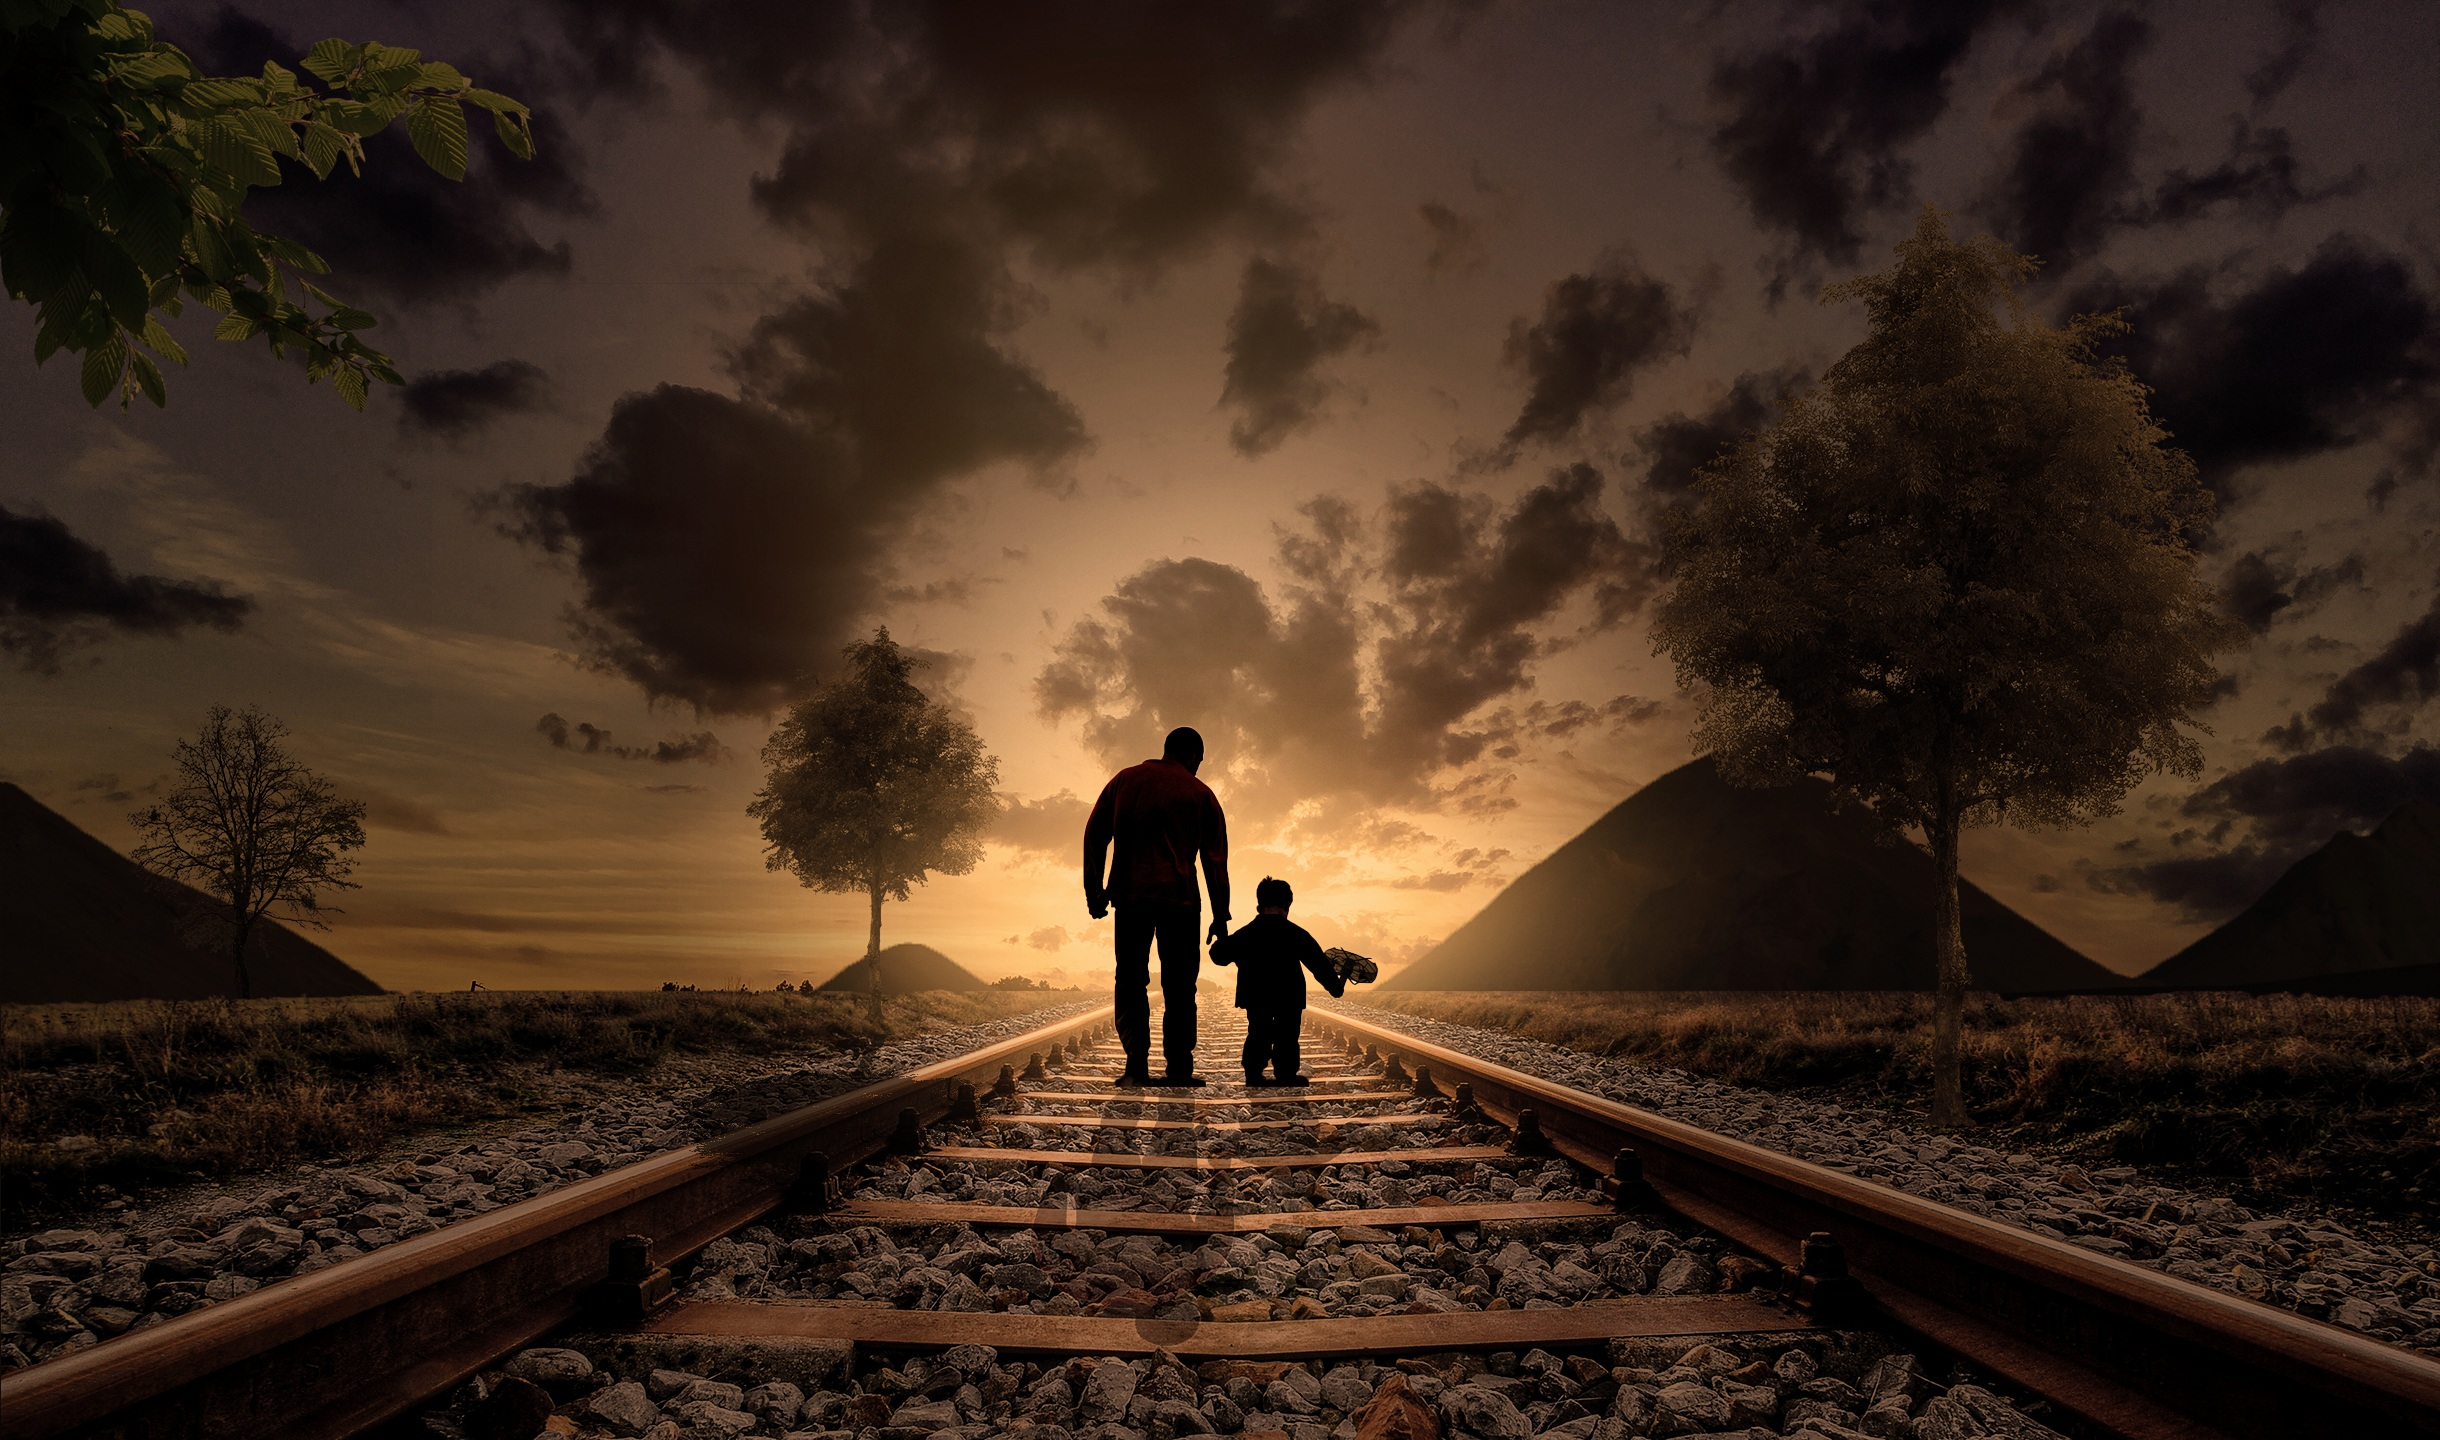 Father and Son, Father, Graphical, Love, Railway, HQ Photo